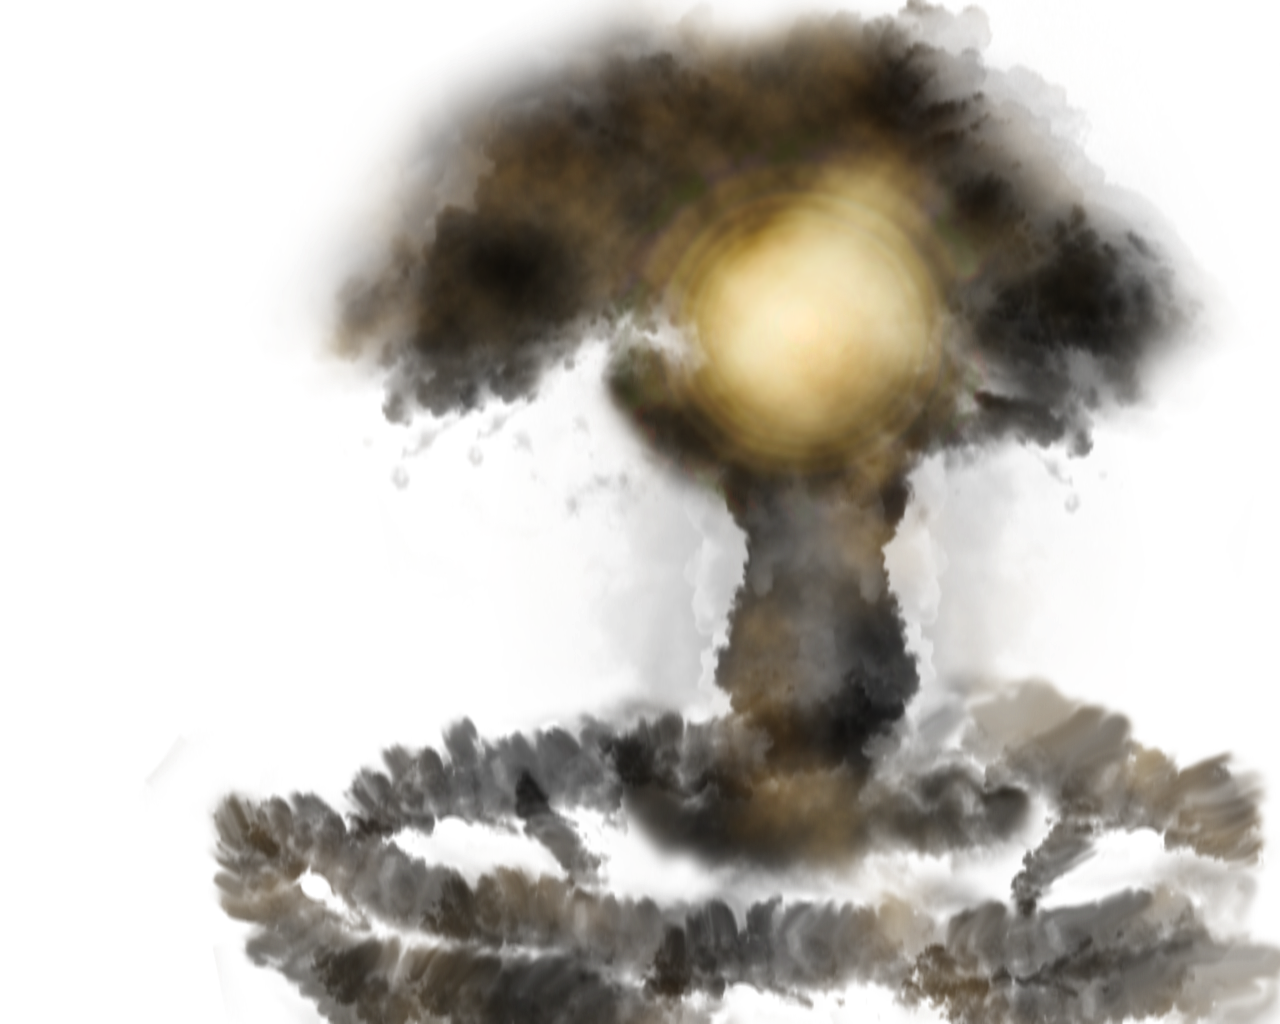 uploads nuclear explosion nuclear explosion PNG38 5